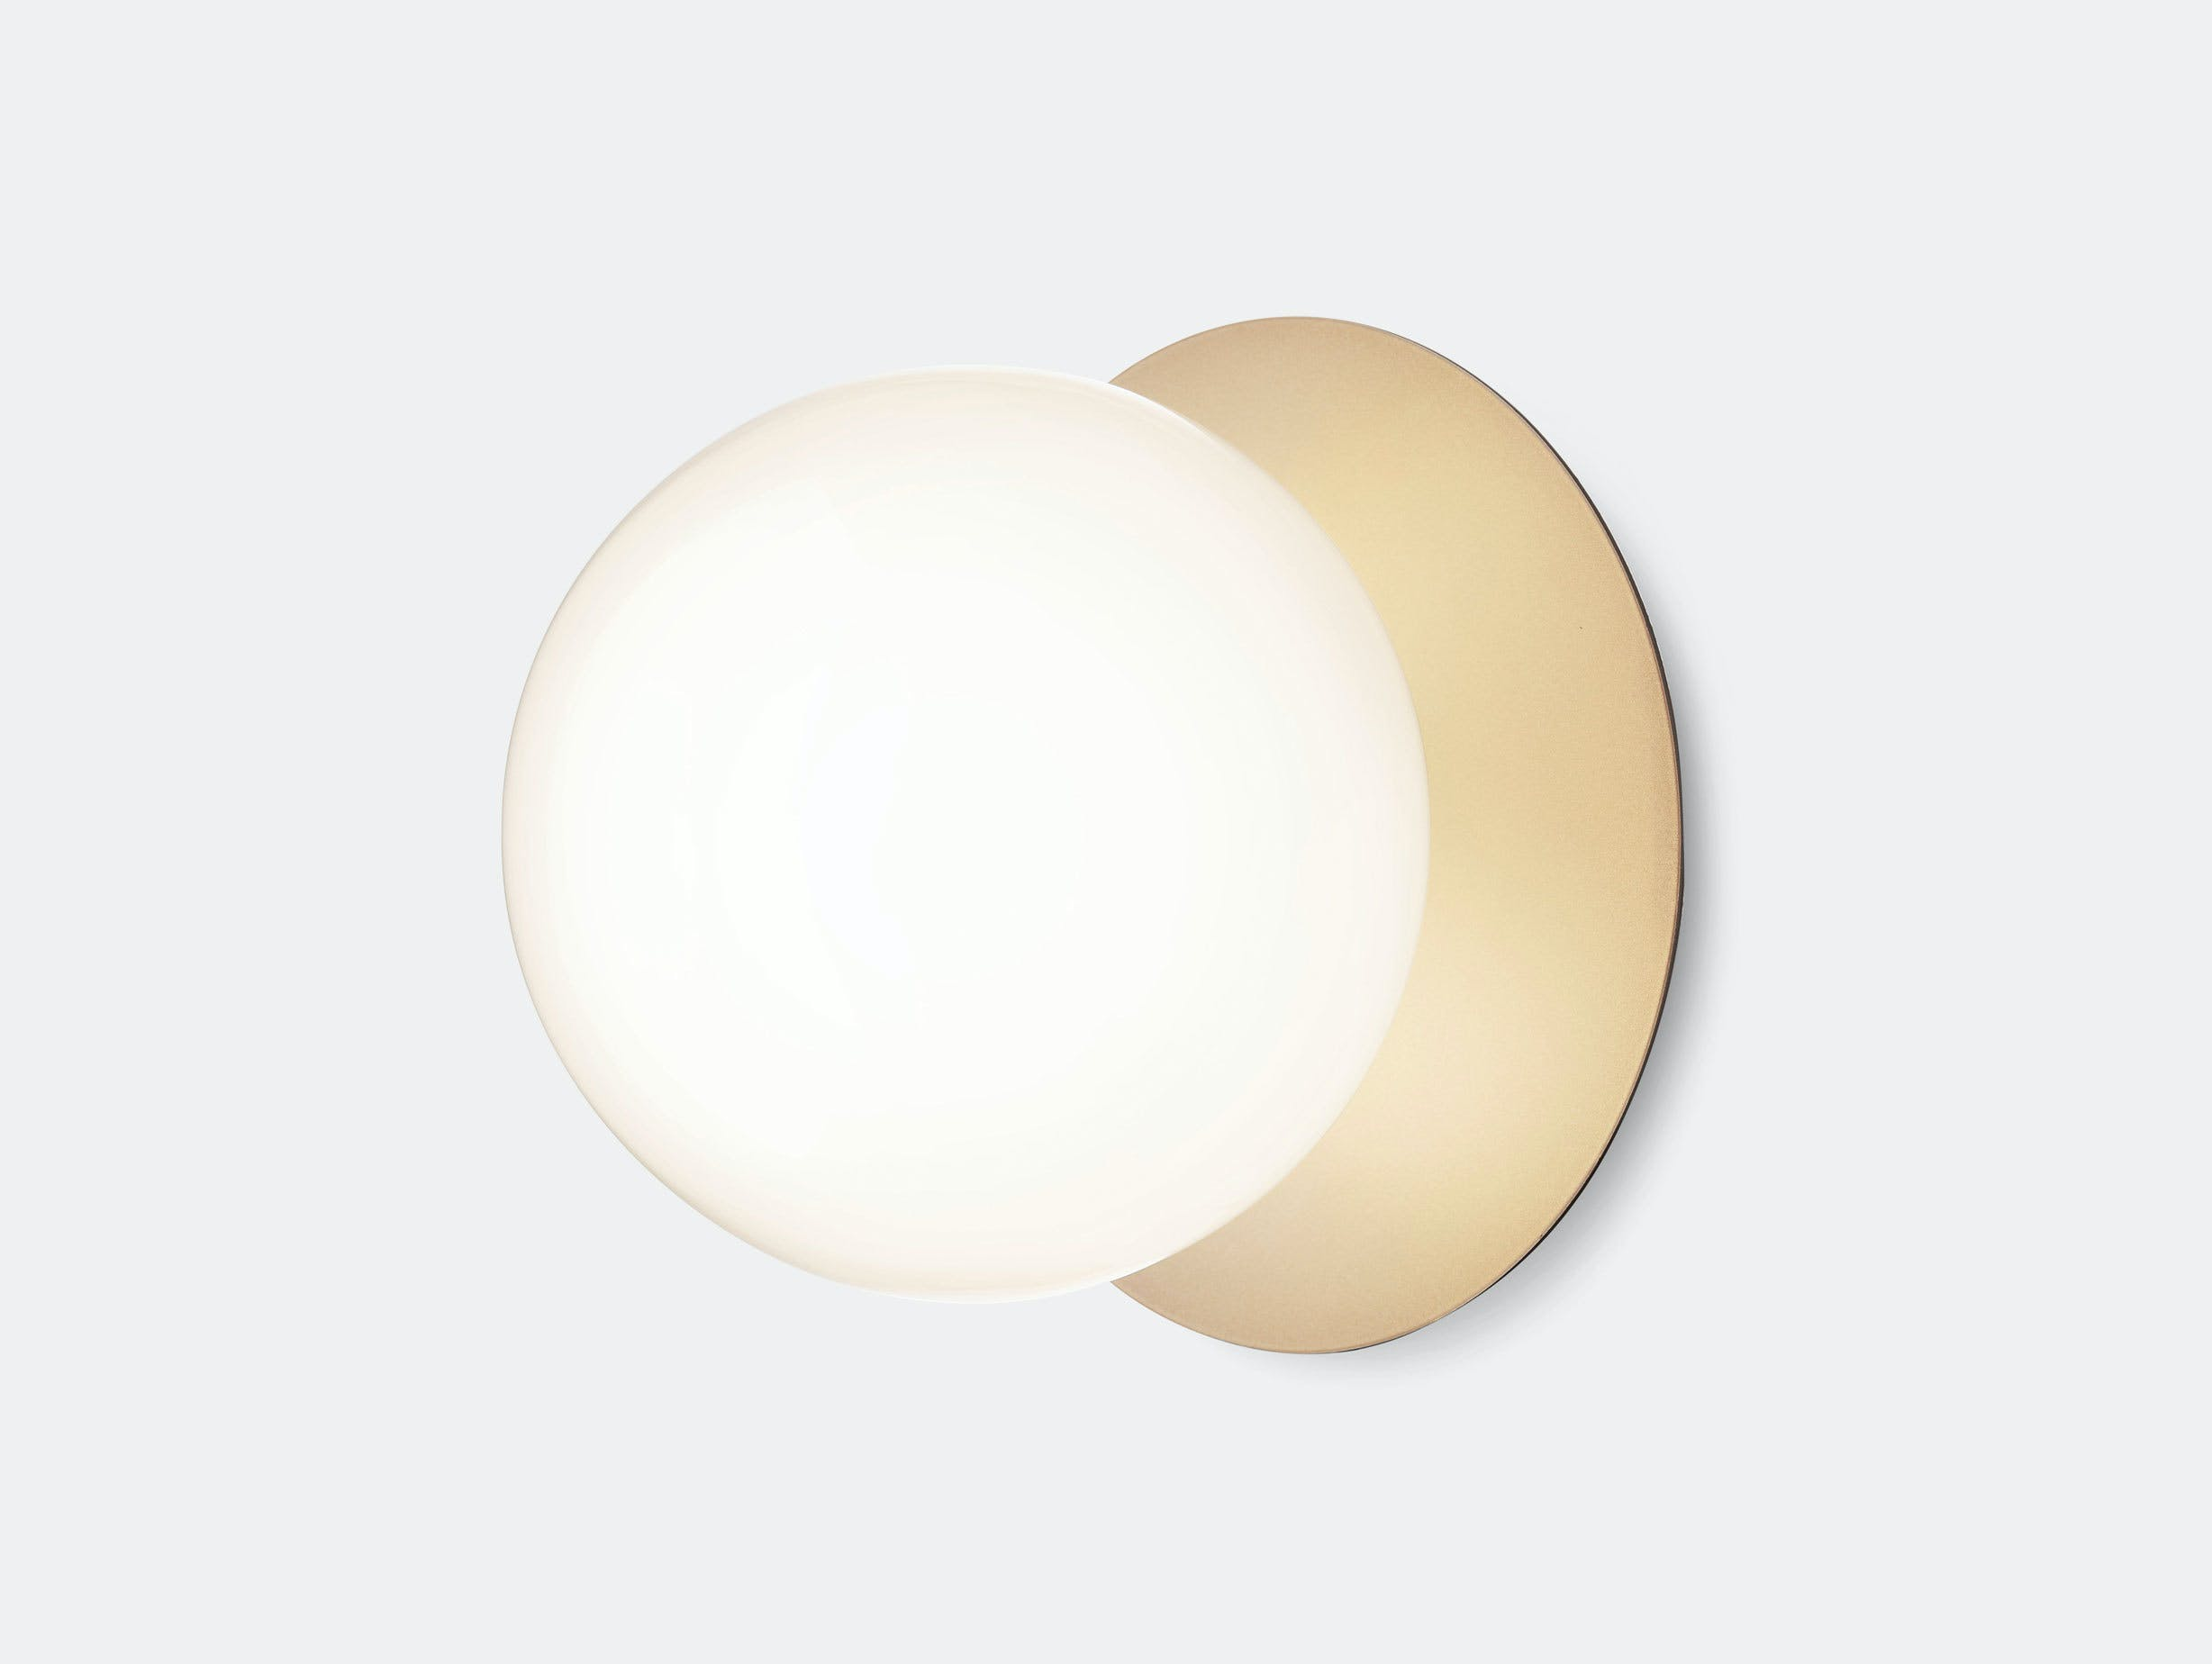 Nuura Liila 1 Wall Ceiling Light Opal Gold Large Sofie Refer